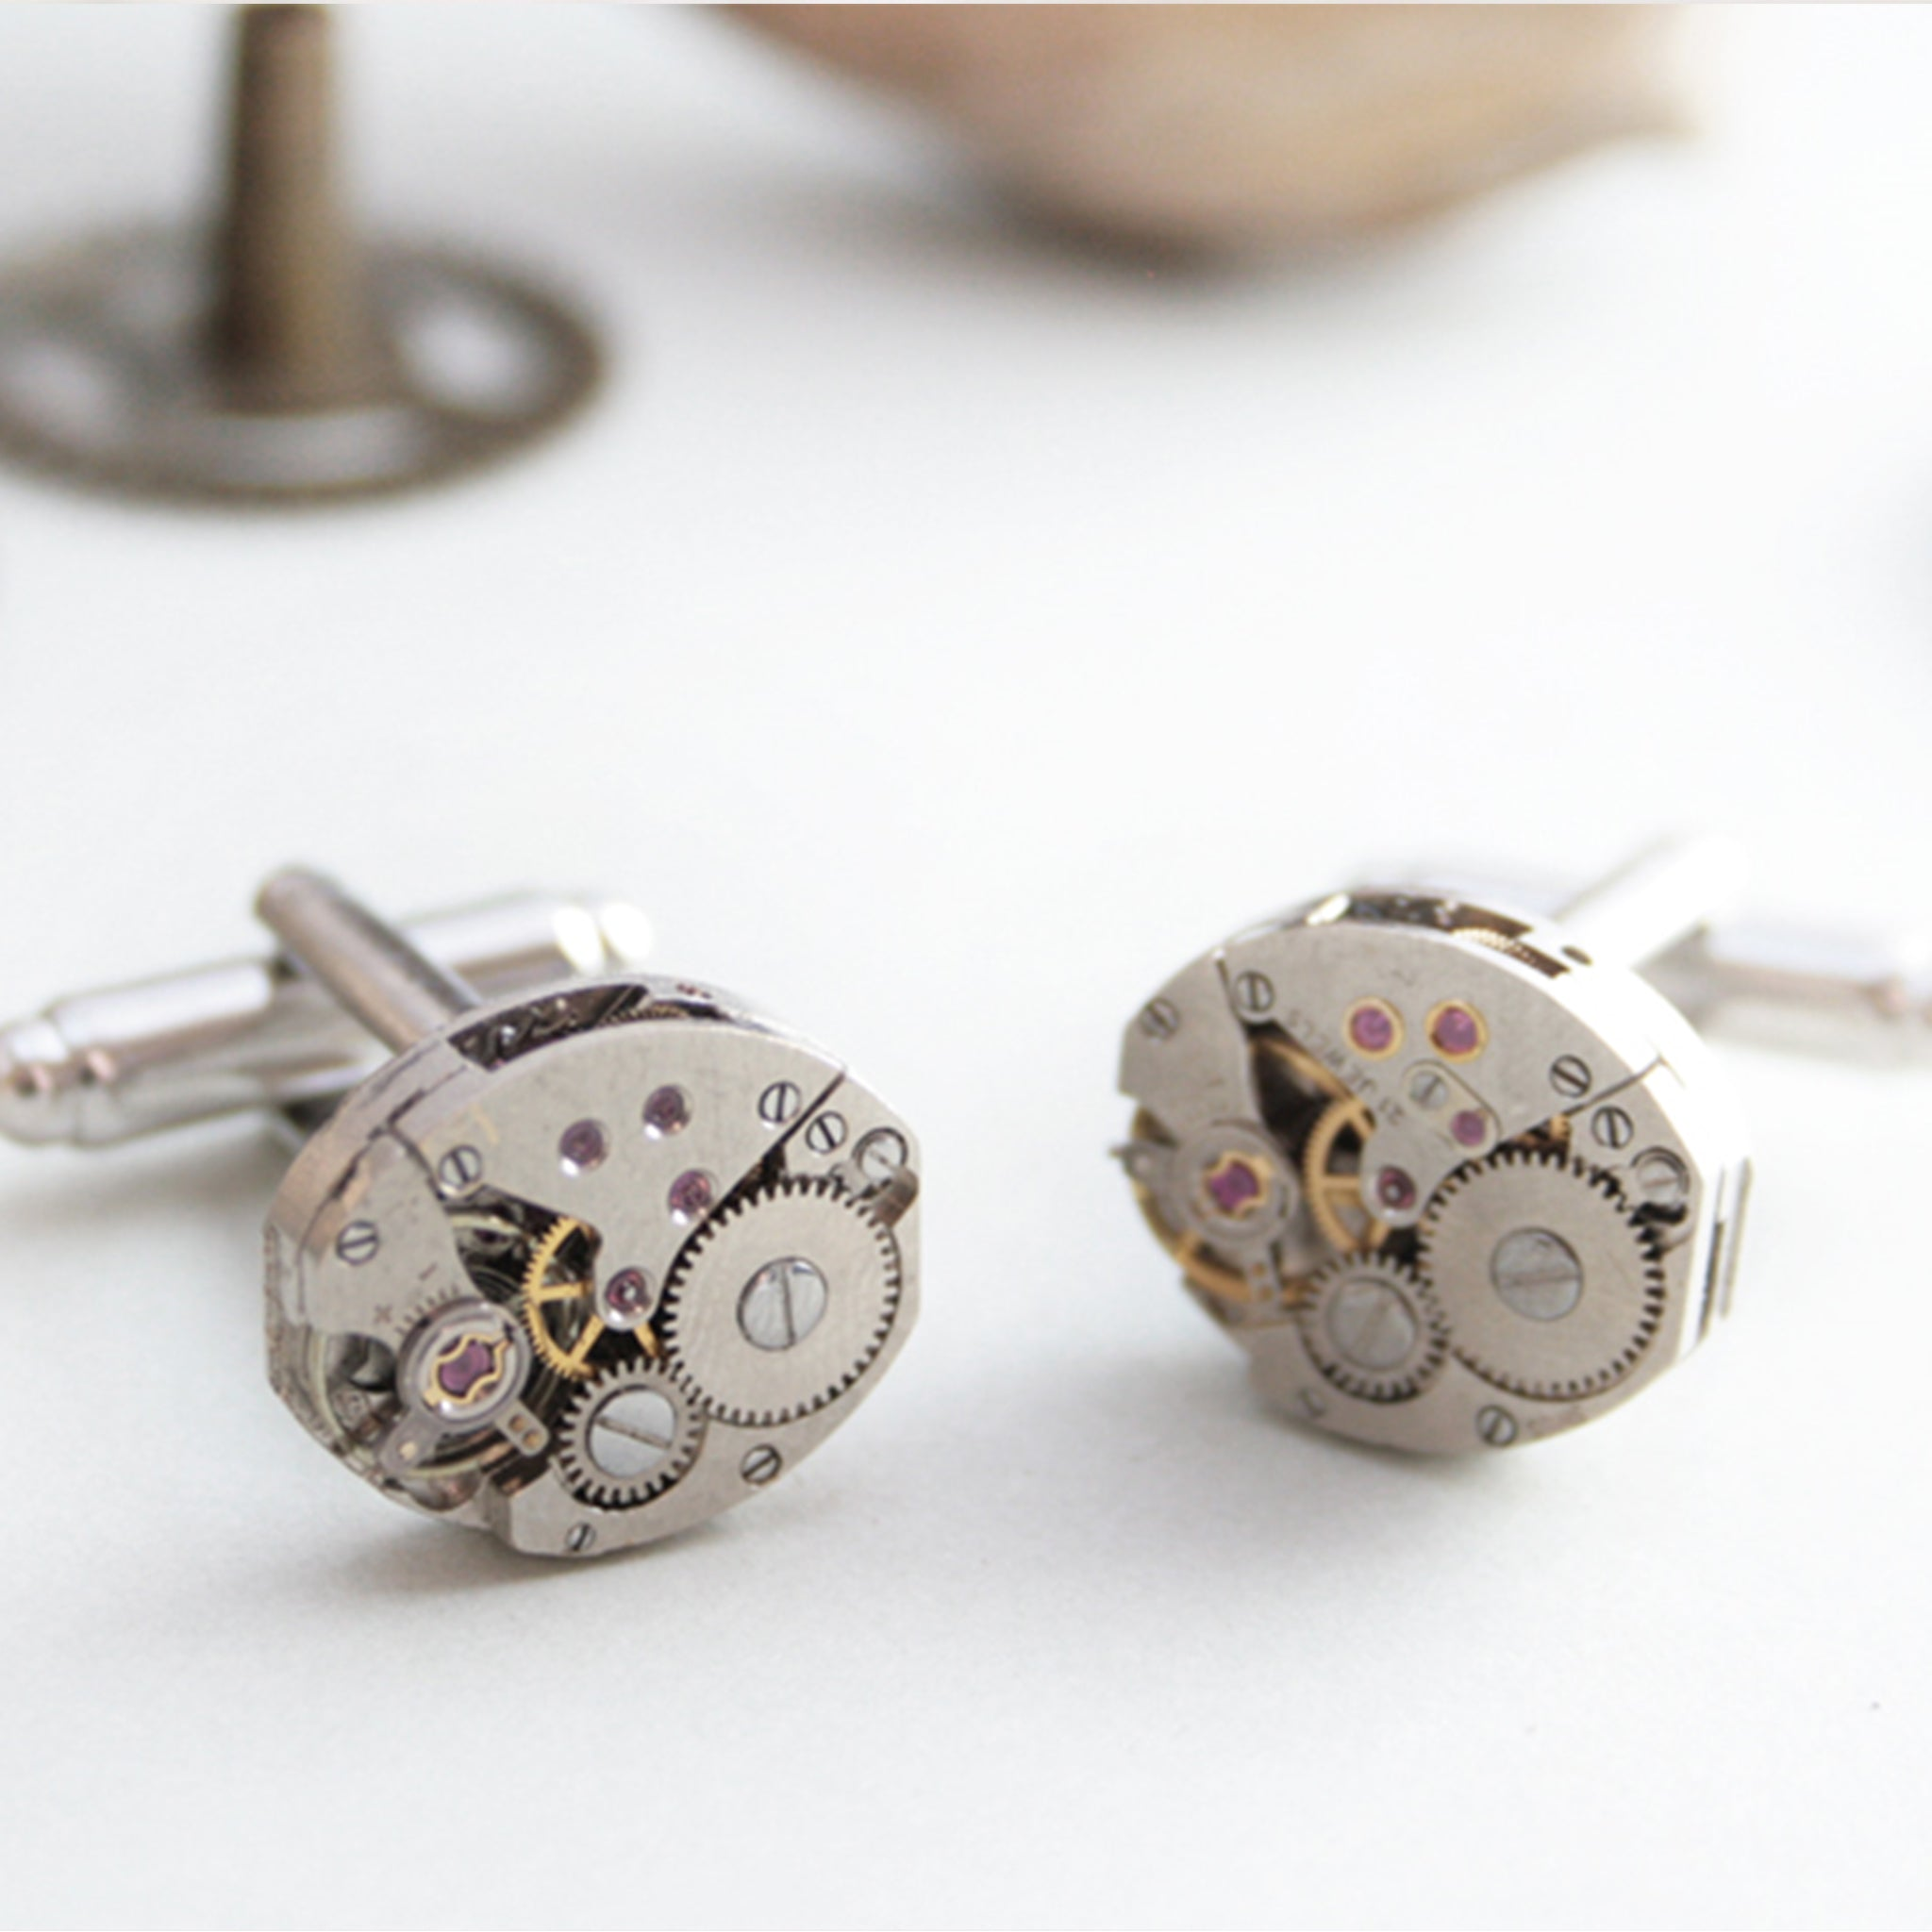 Cufflinks featuring old clock parts